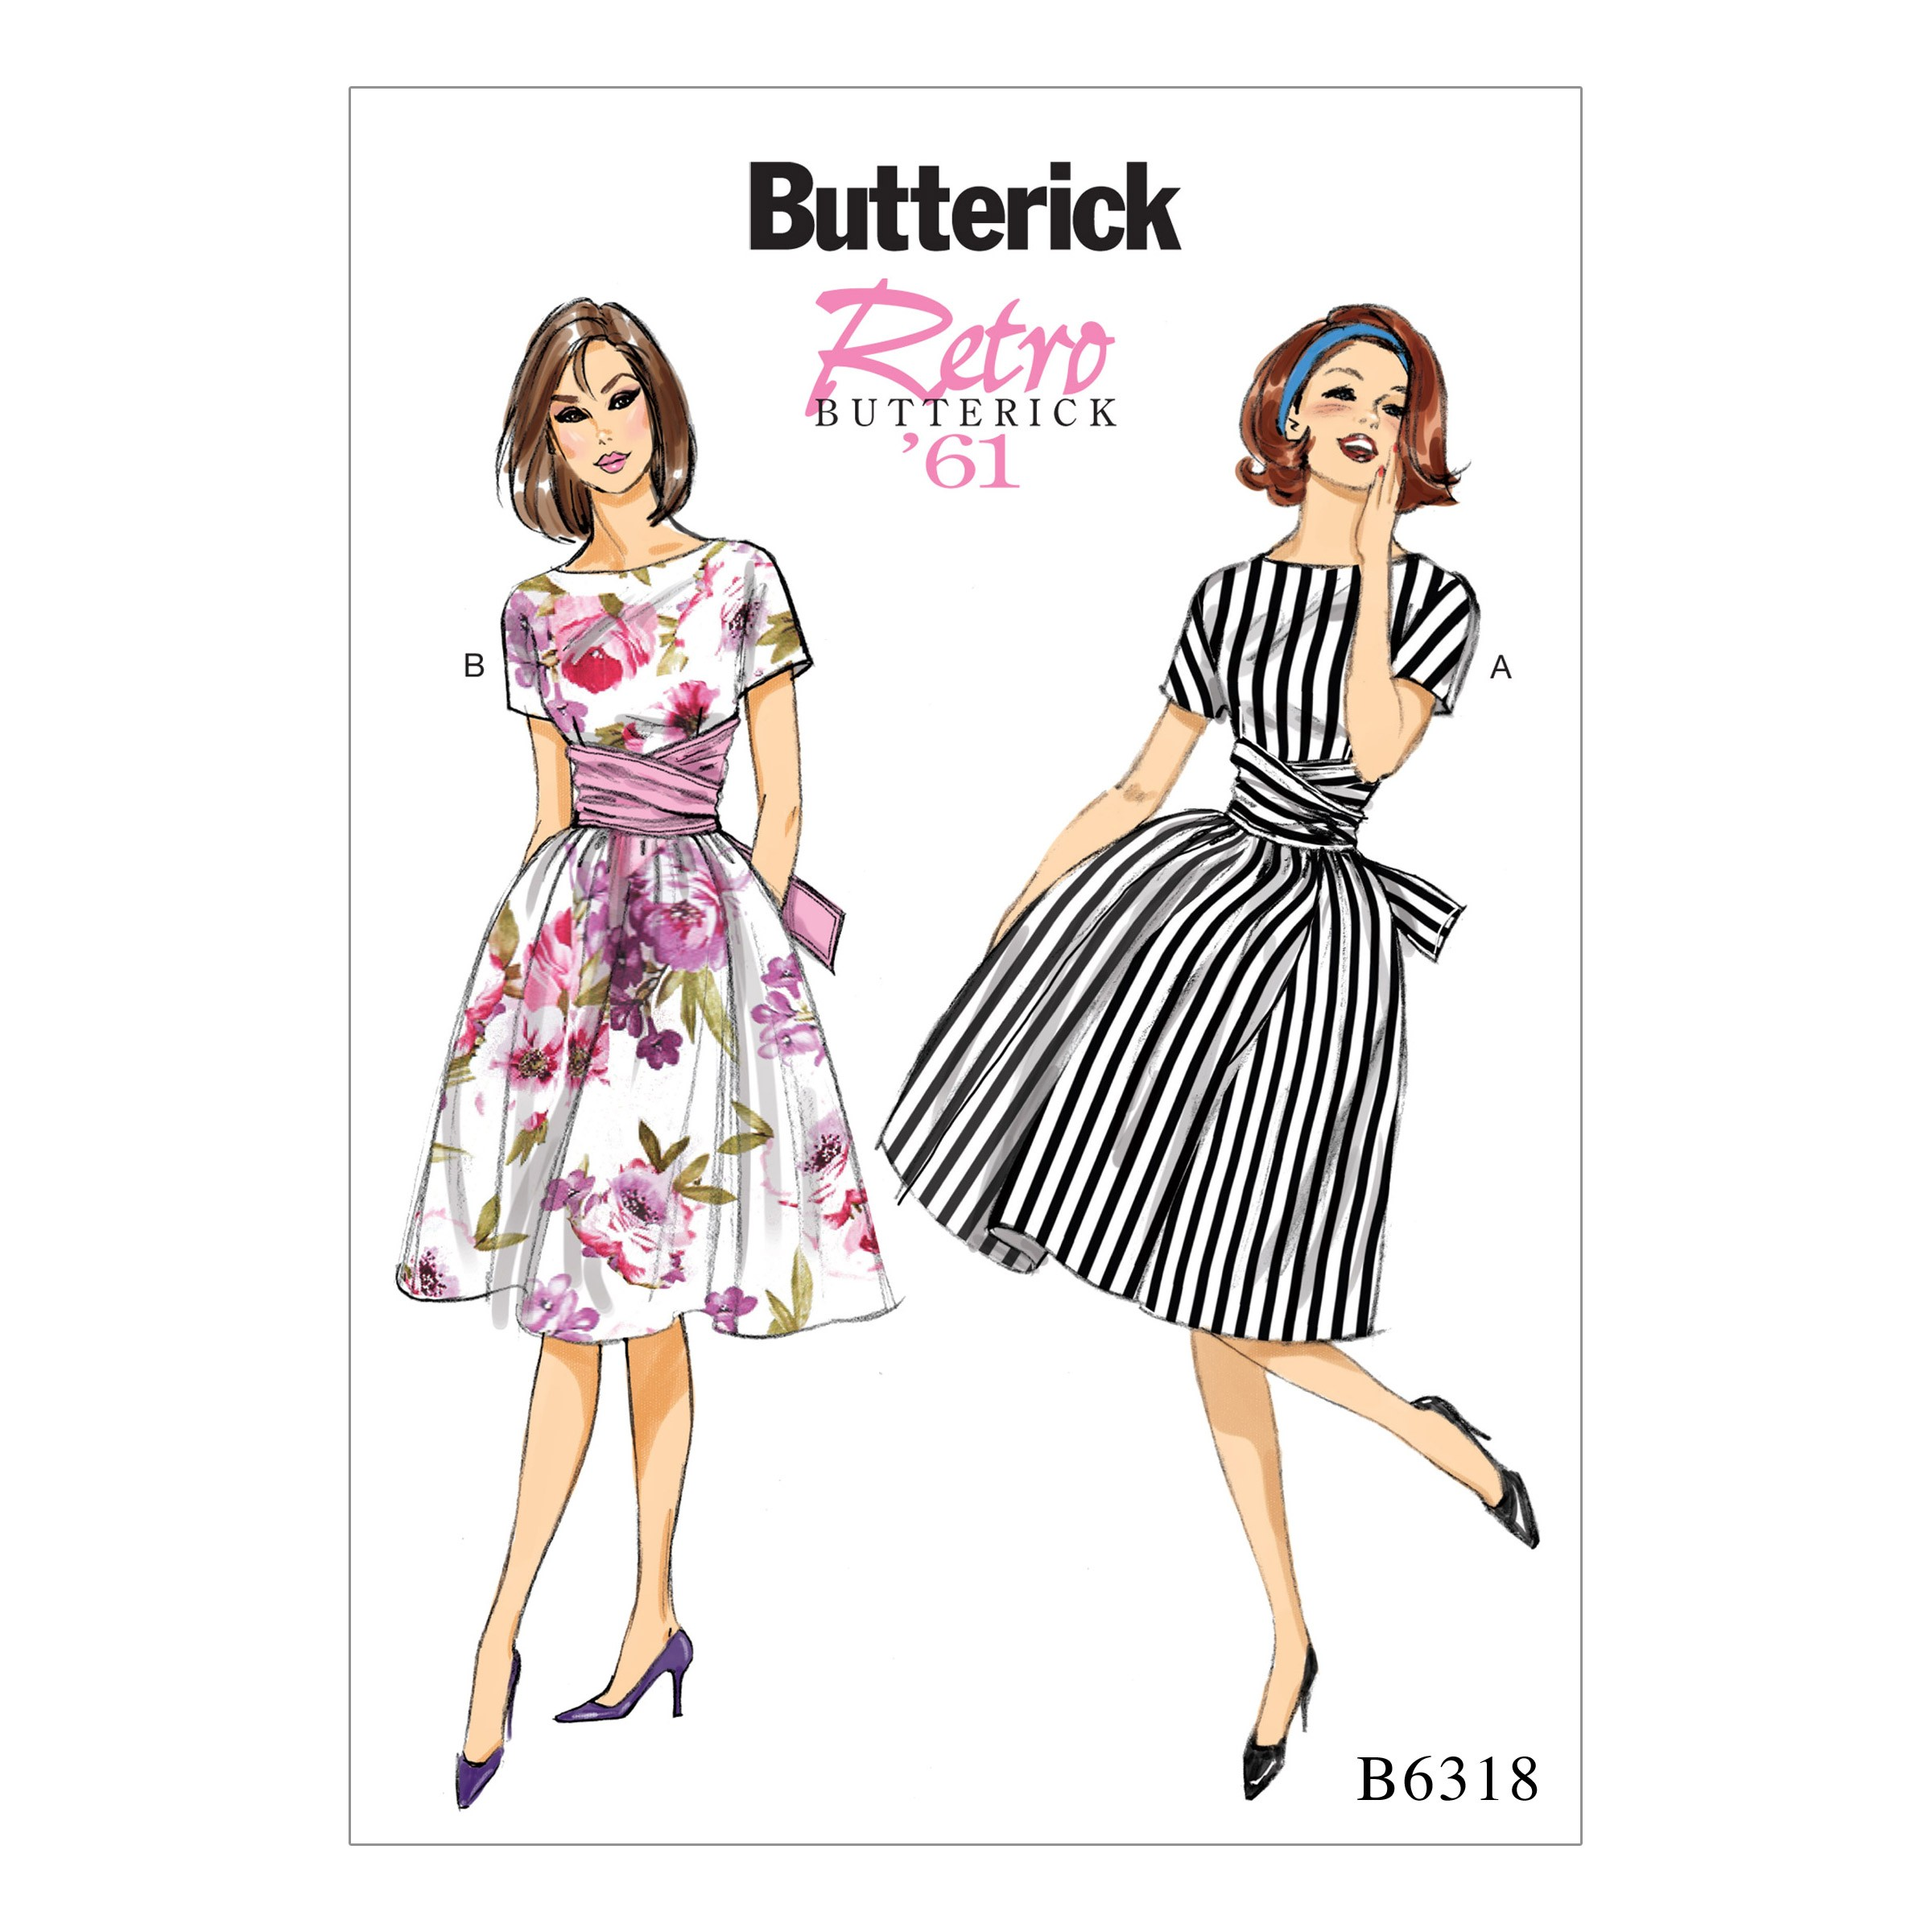 Butterick Sewing Pattern 6318 Misses' Semi Fitted Bodice Dress